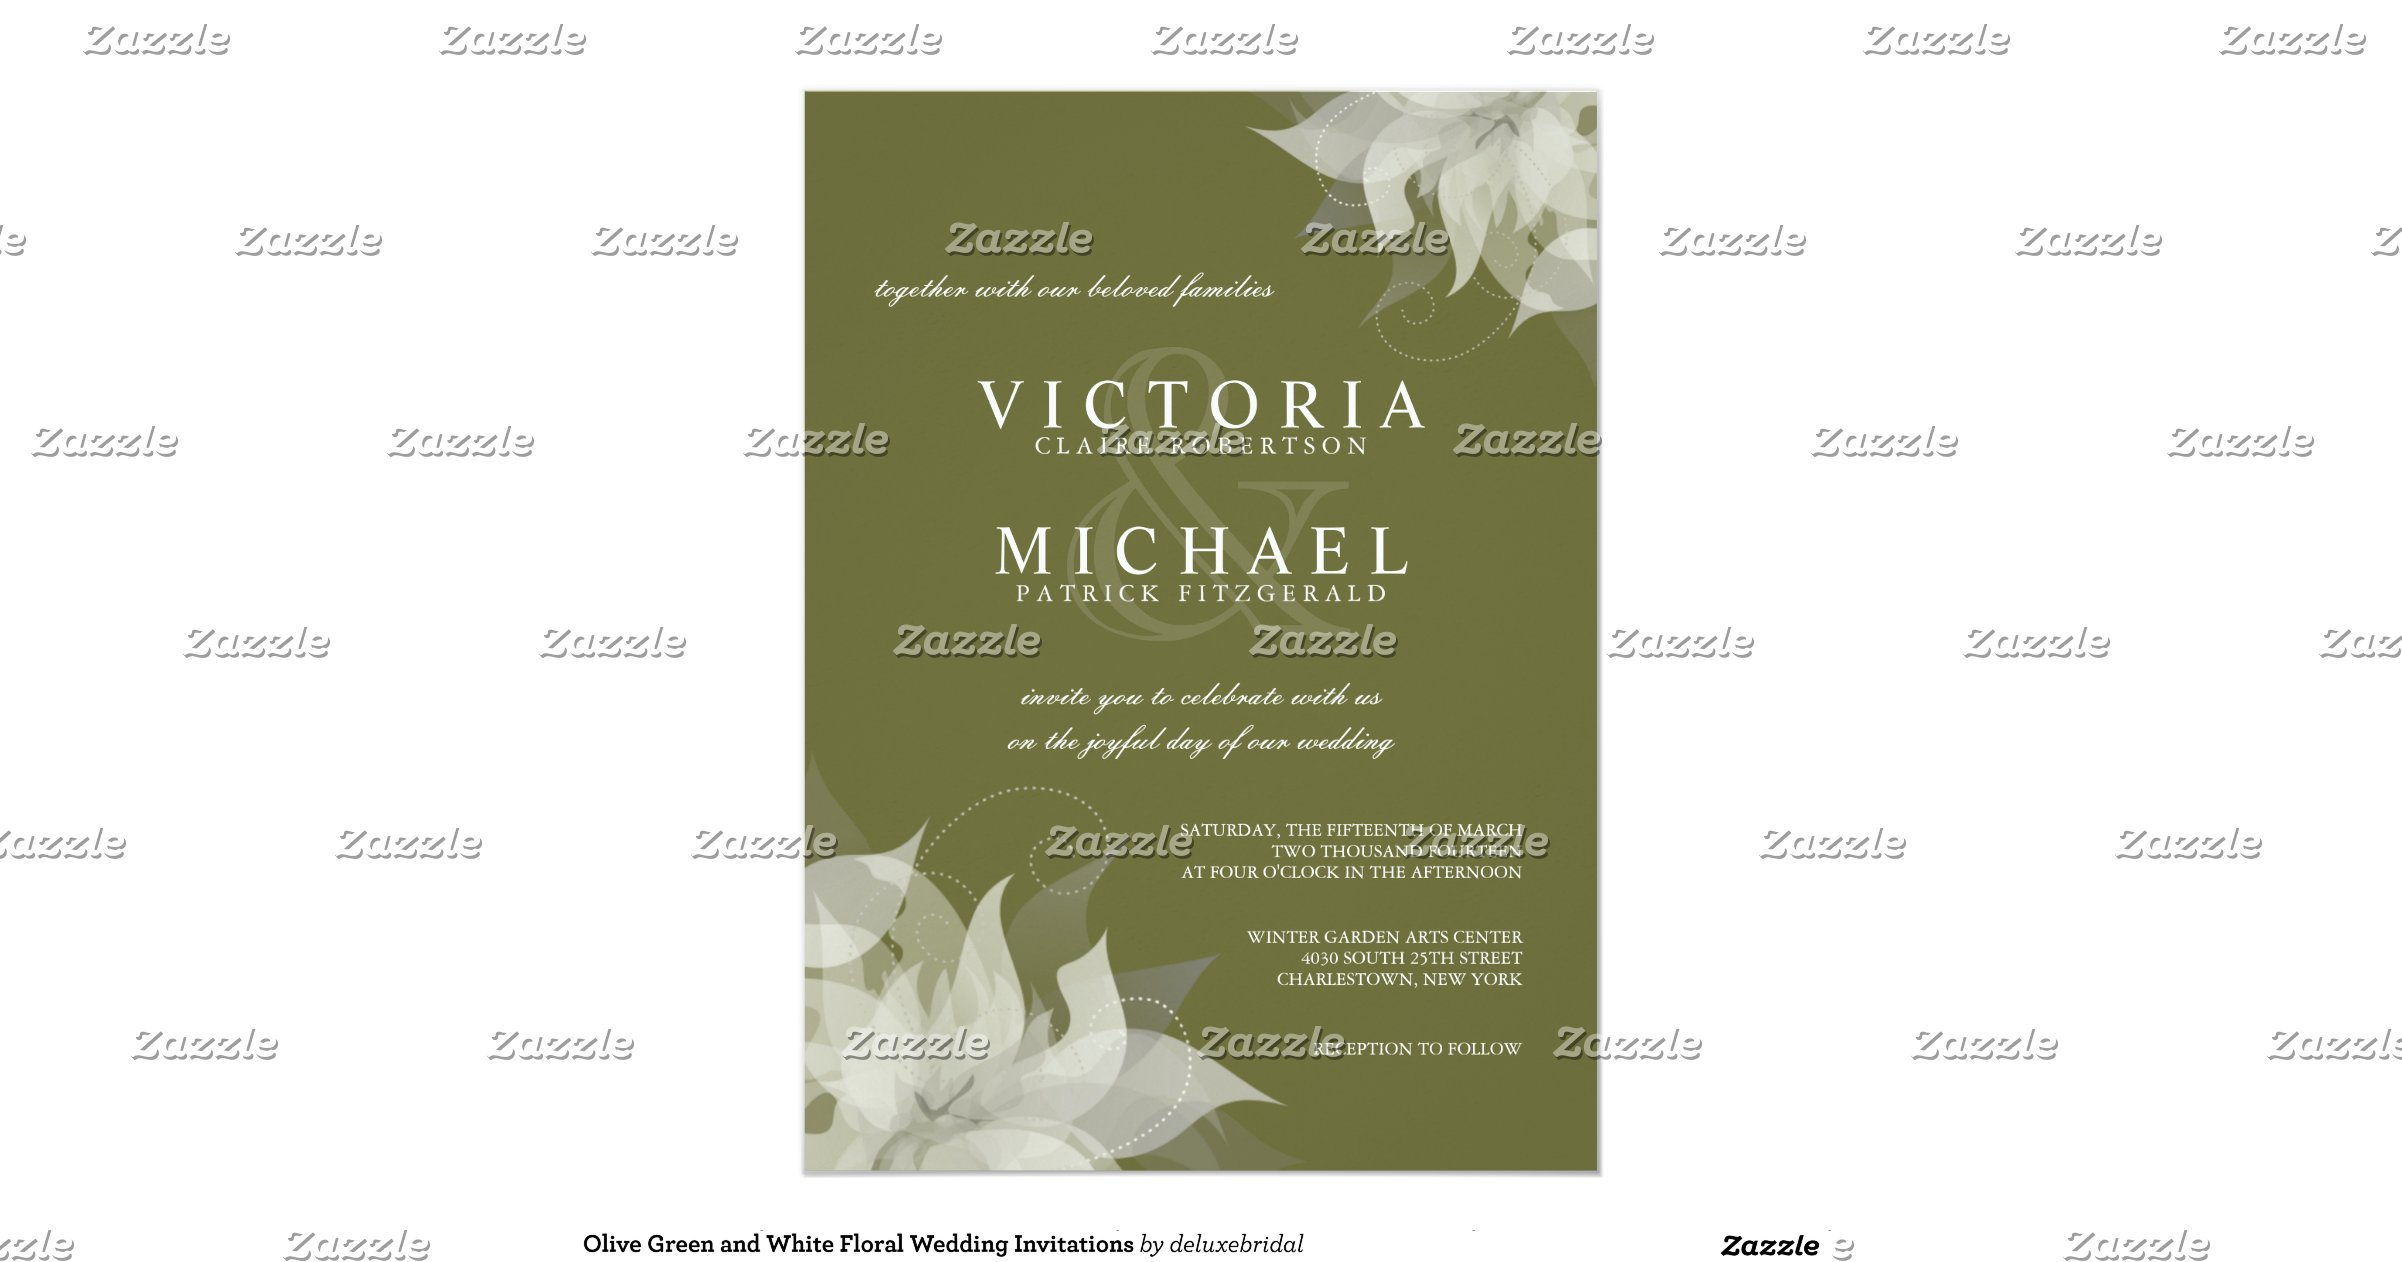 White And Green Wedding Invitations: Olive_green_and_white_floral_wedding_invitations